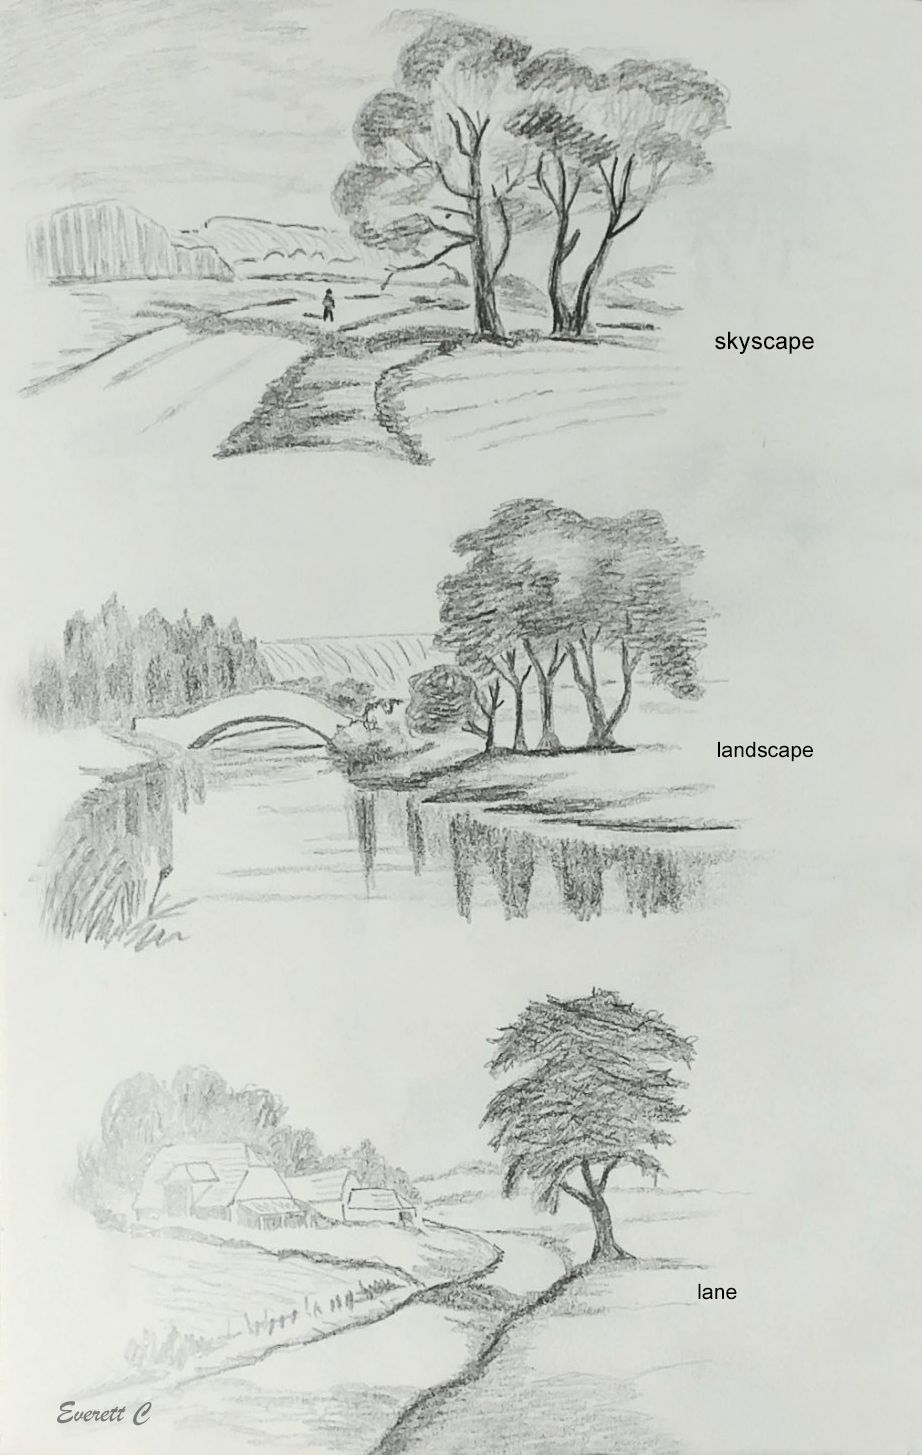 Daily Drawing No 440 Skyscape Landscape And Lane Pencil Drawings Re Just Draw One Thing Today Landscape Pencil Drawings Landscape Drawings Skyscape